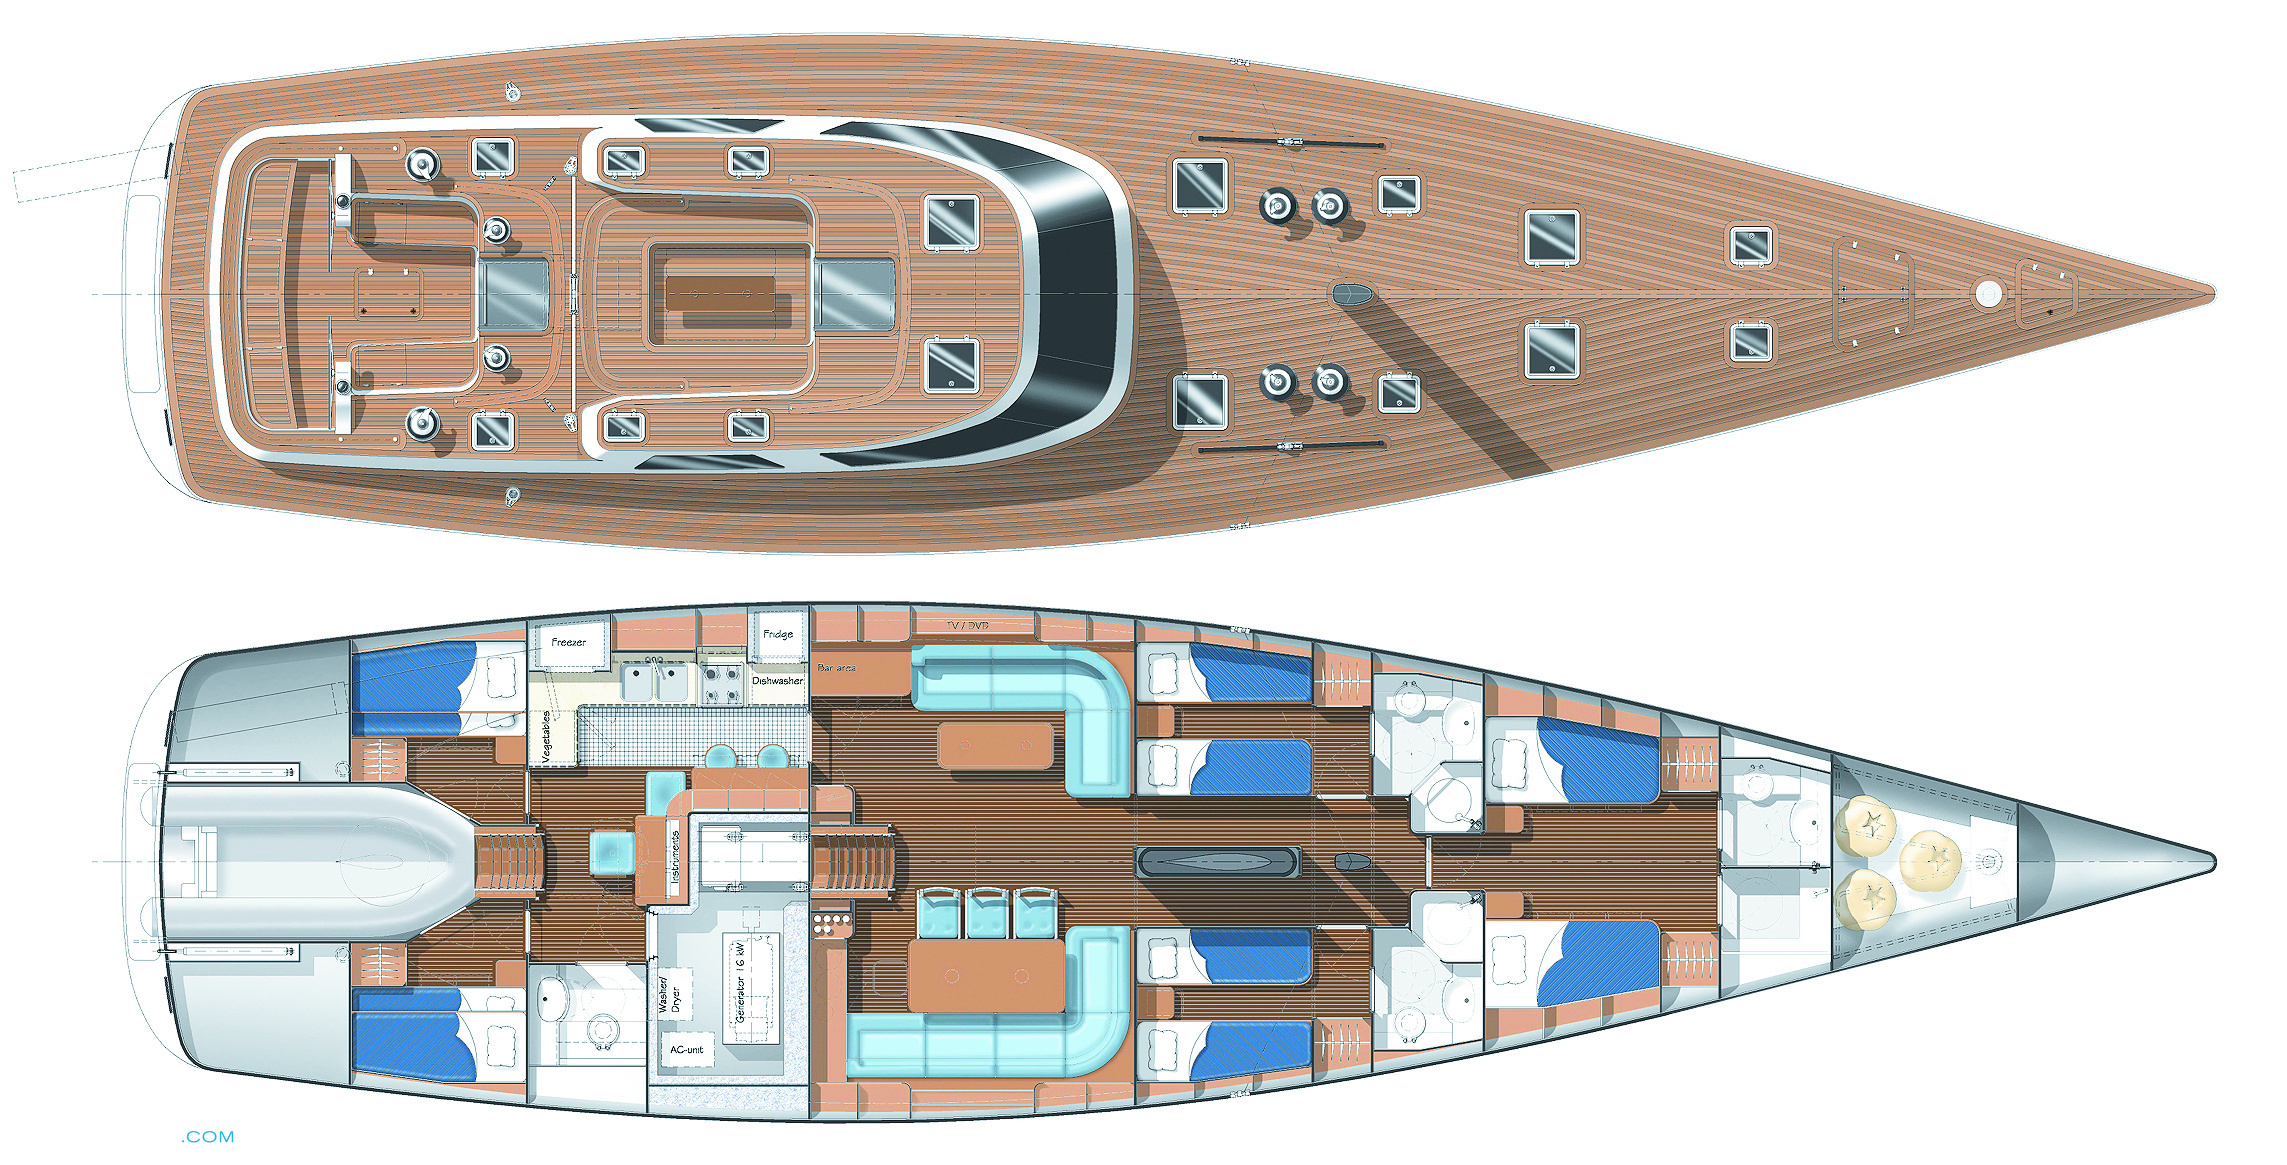 Yacht Plans Images - Reverse Search